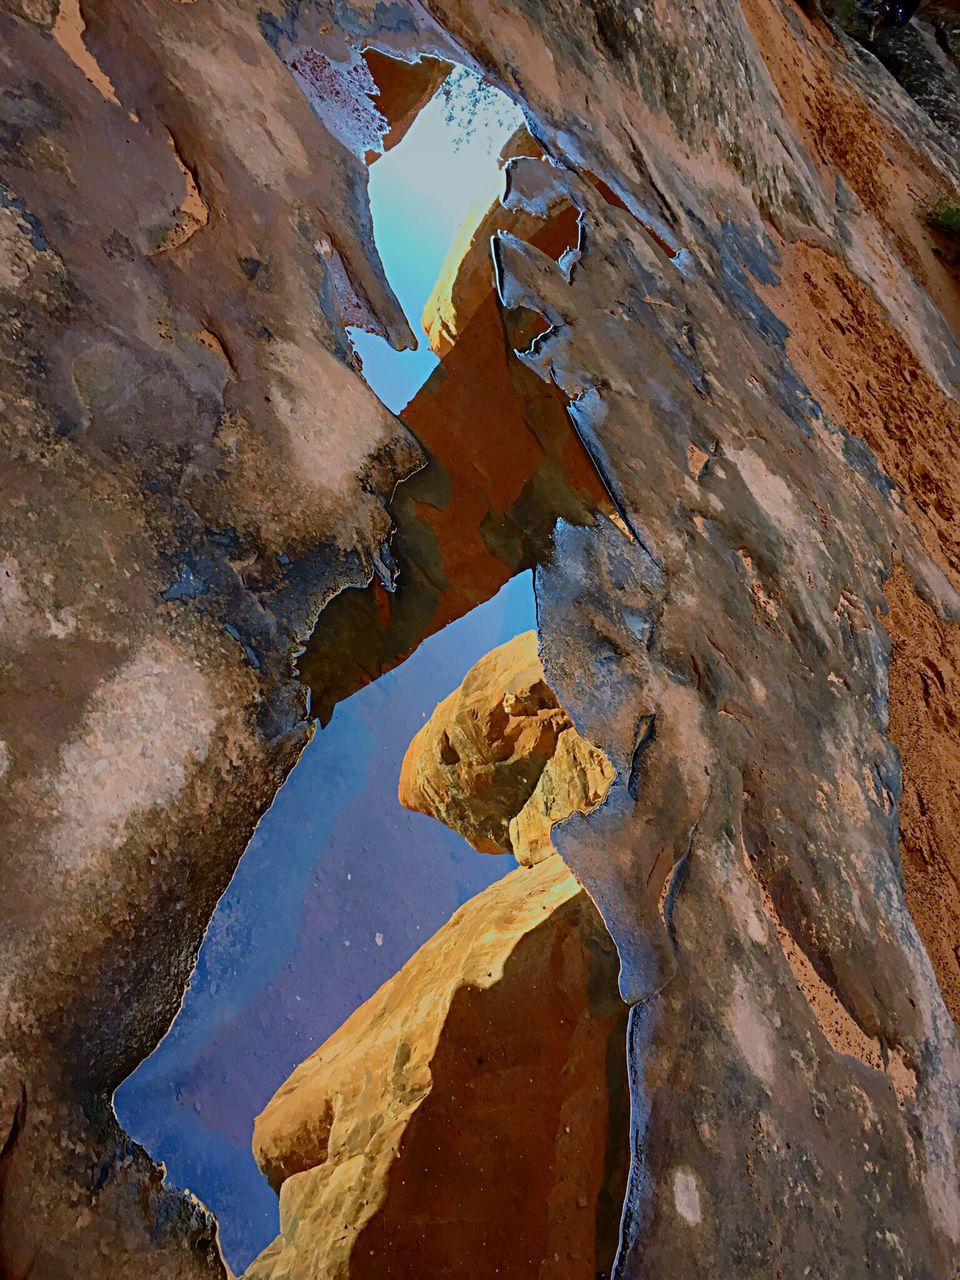 geology, rock formation, nature, rock - object, physical geography, no people, tranquility, day, outdoors, landscape, arid climate, beauty in nature, sky